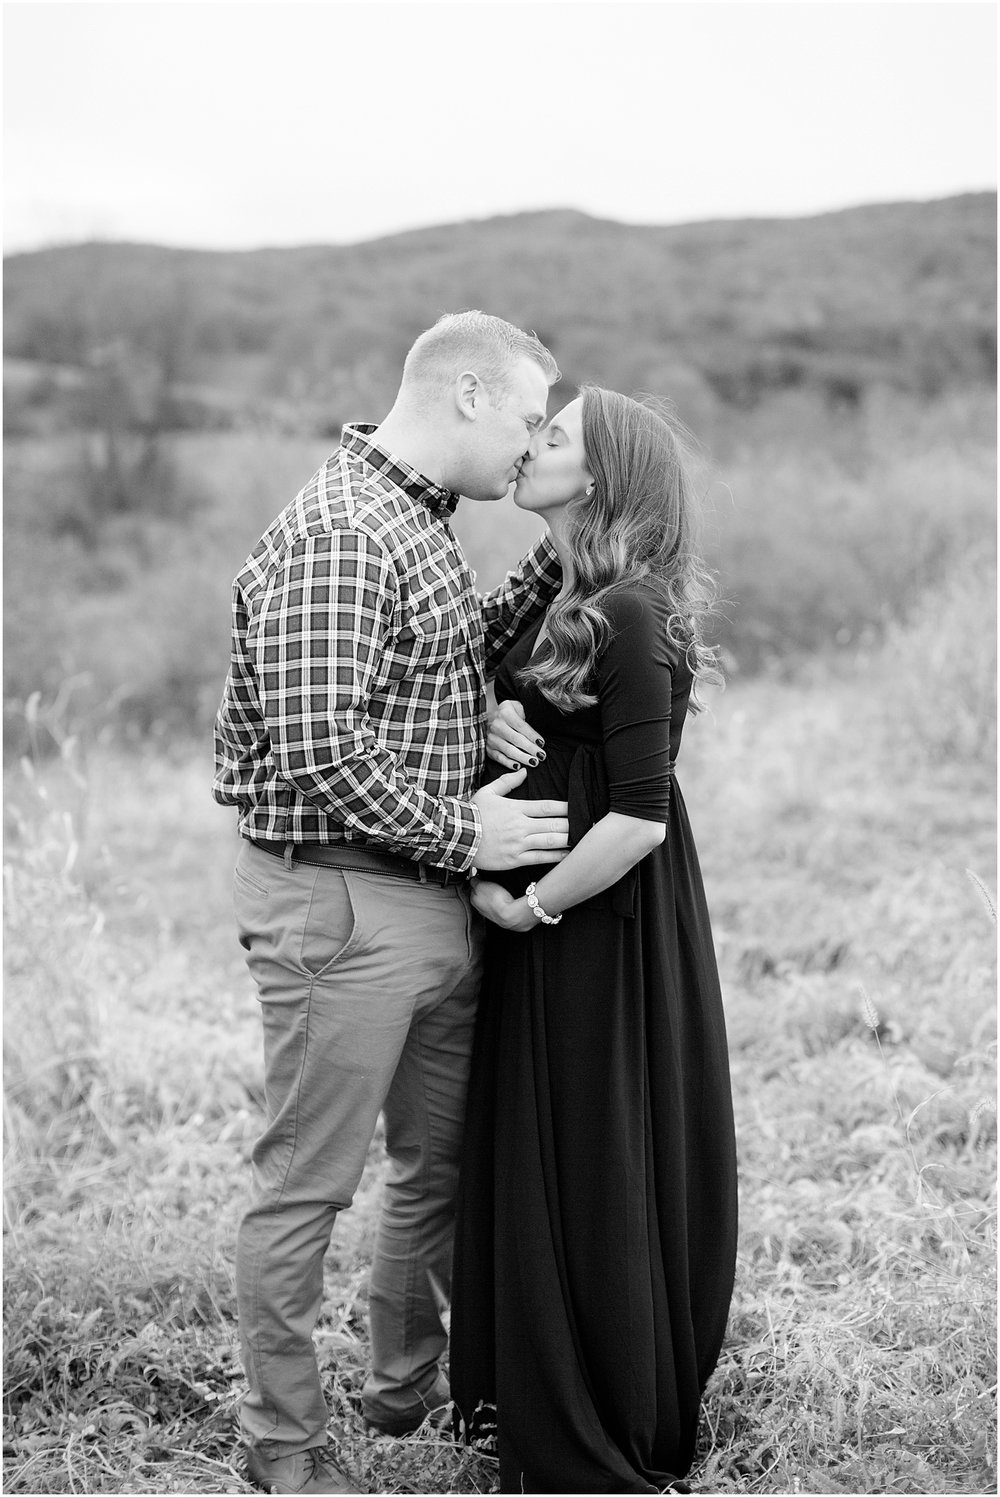 Ashley Powell Photography Hannah Fallion Maternity Blog Images_0043.jpg